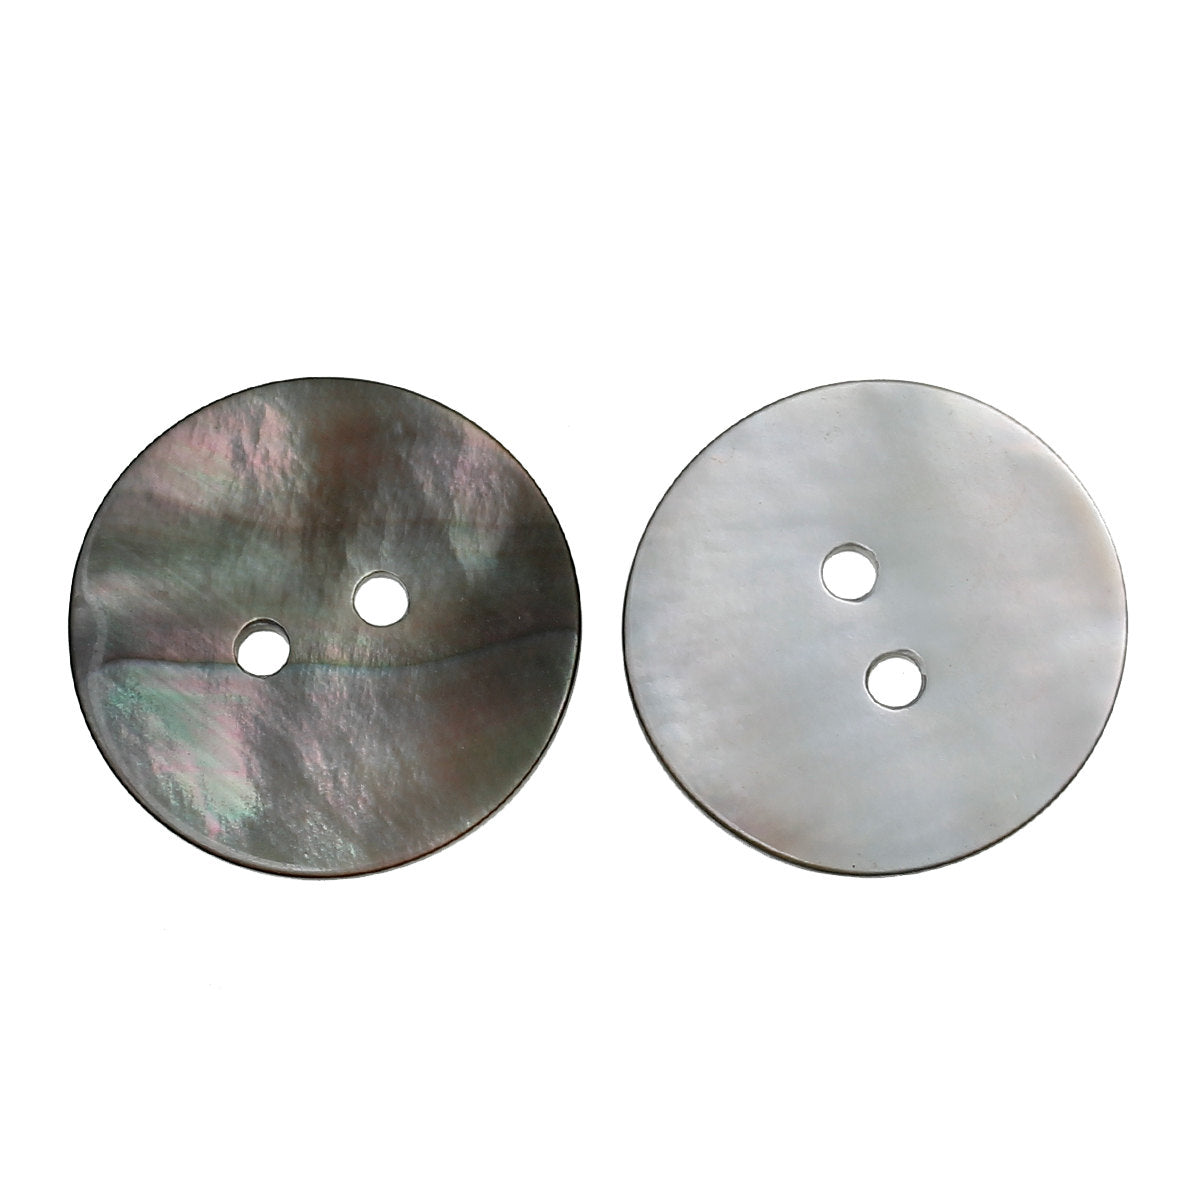 2 Extra Large Shell Buttons - 2 inch - 5cm